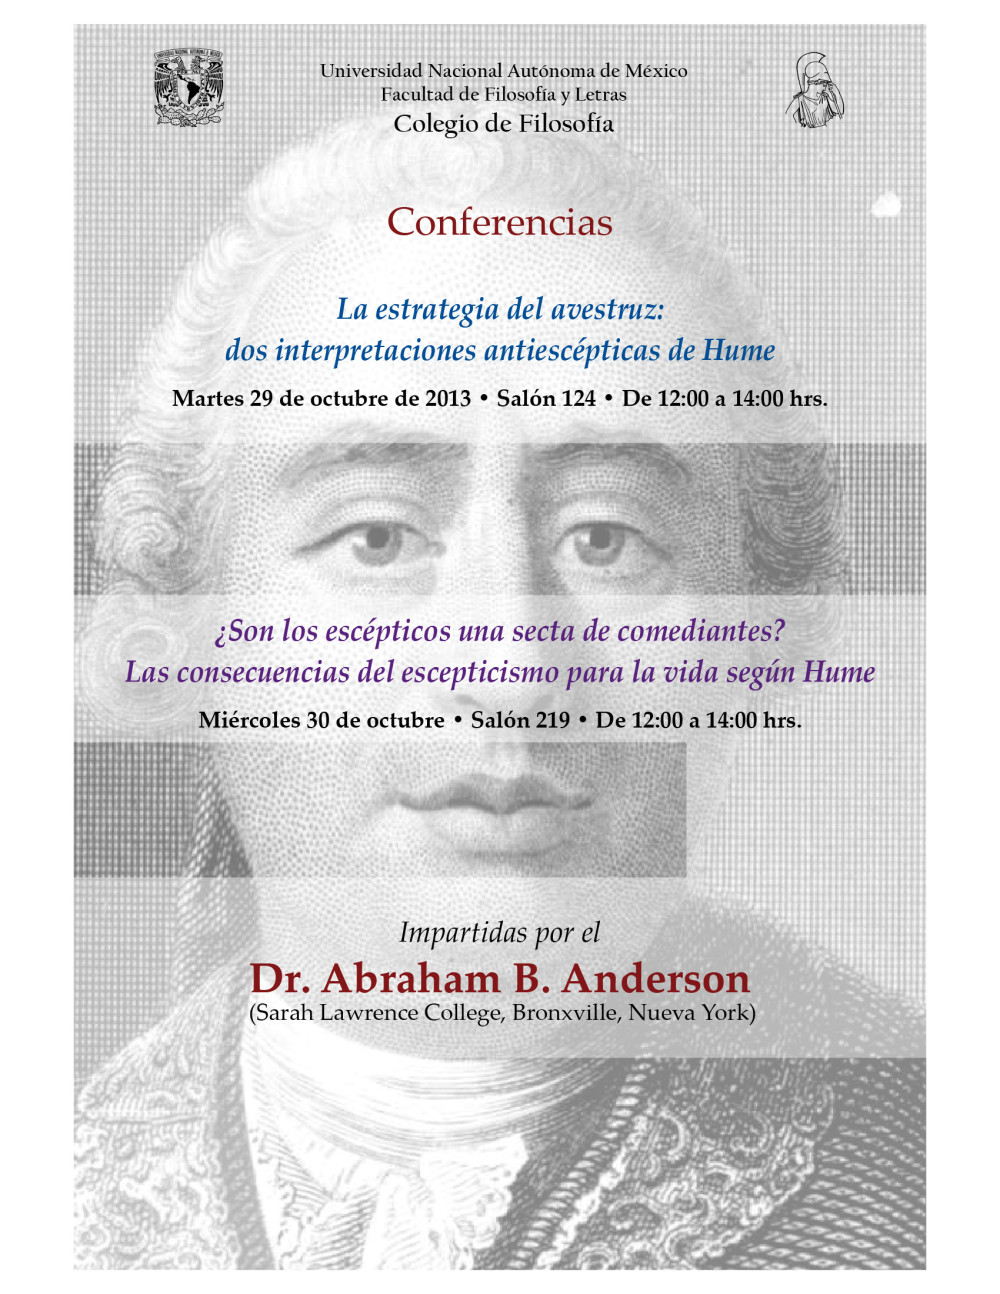 Conferencias-sobre-Hume-e1382639372429